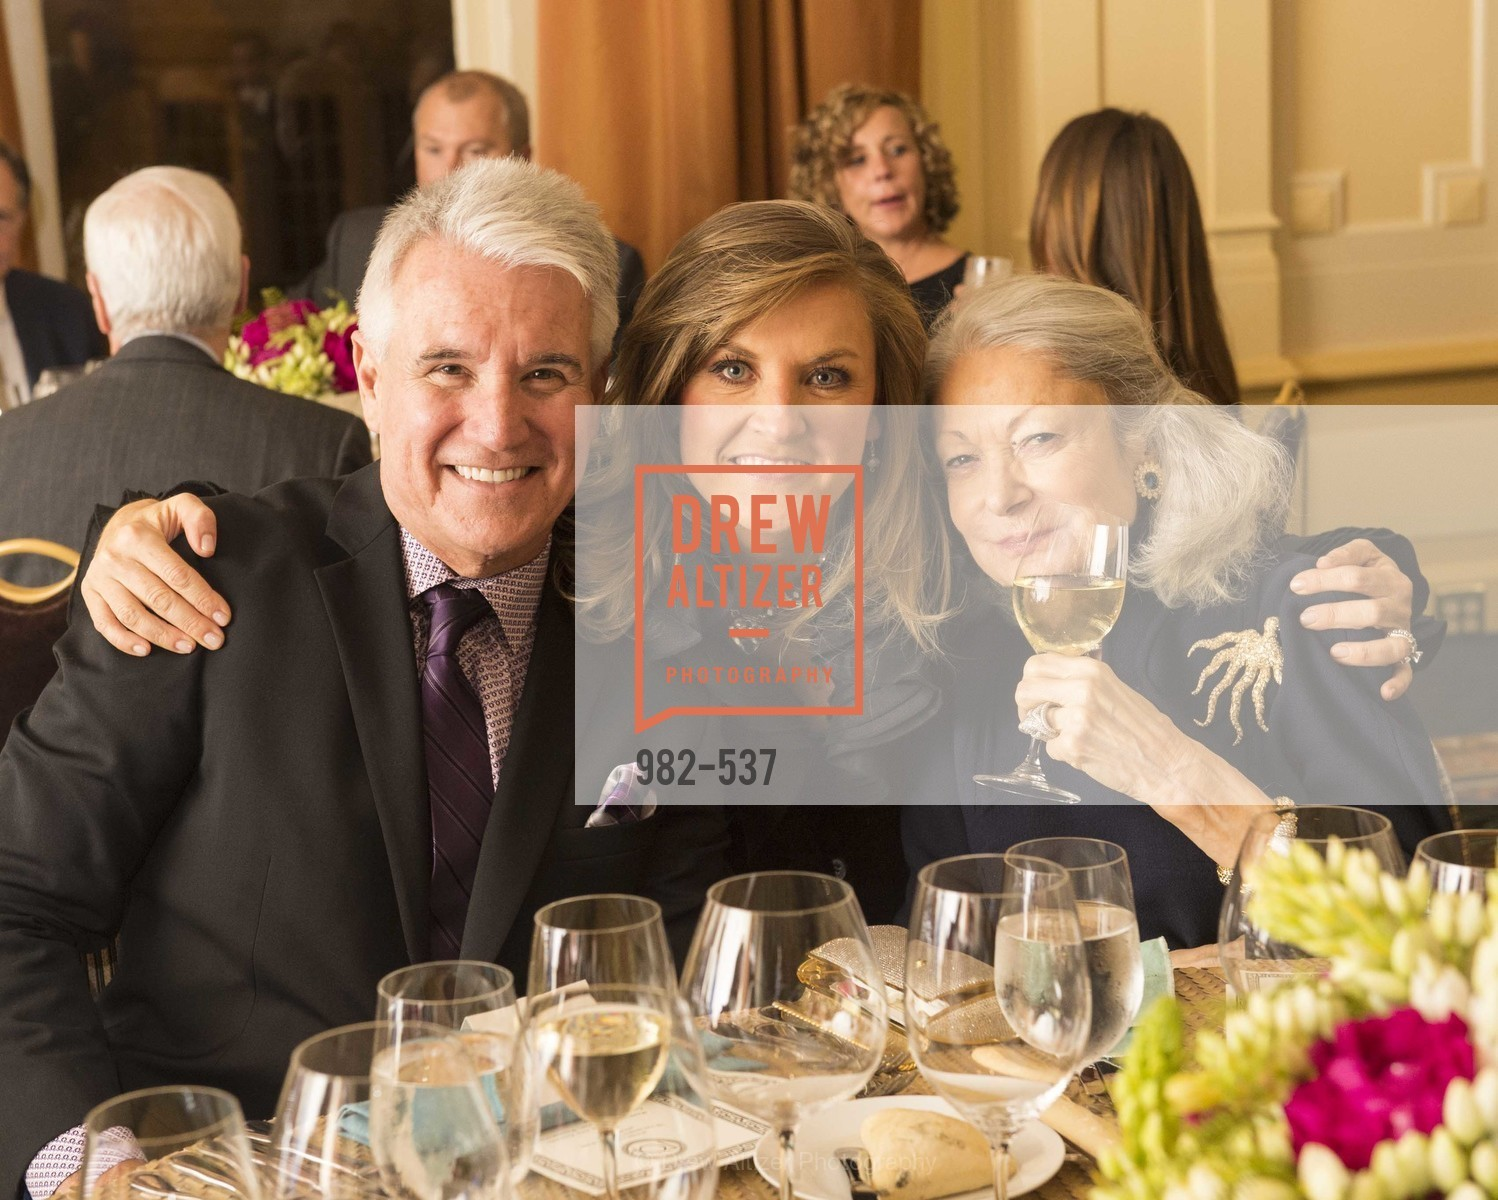 George Gascon, Fabiola Gascon, Denise Hale, TOP OF THE MARK'S 75TH Anniversary Party, US, November 6th, 2014,Drew Altizer, Drew Altizer Photography, full-service agency, private events, San Francisco photographer, photographer california